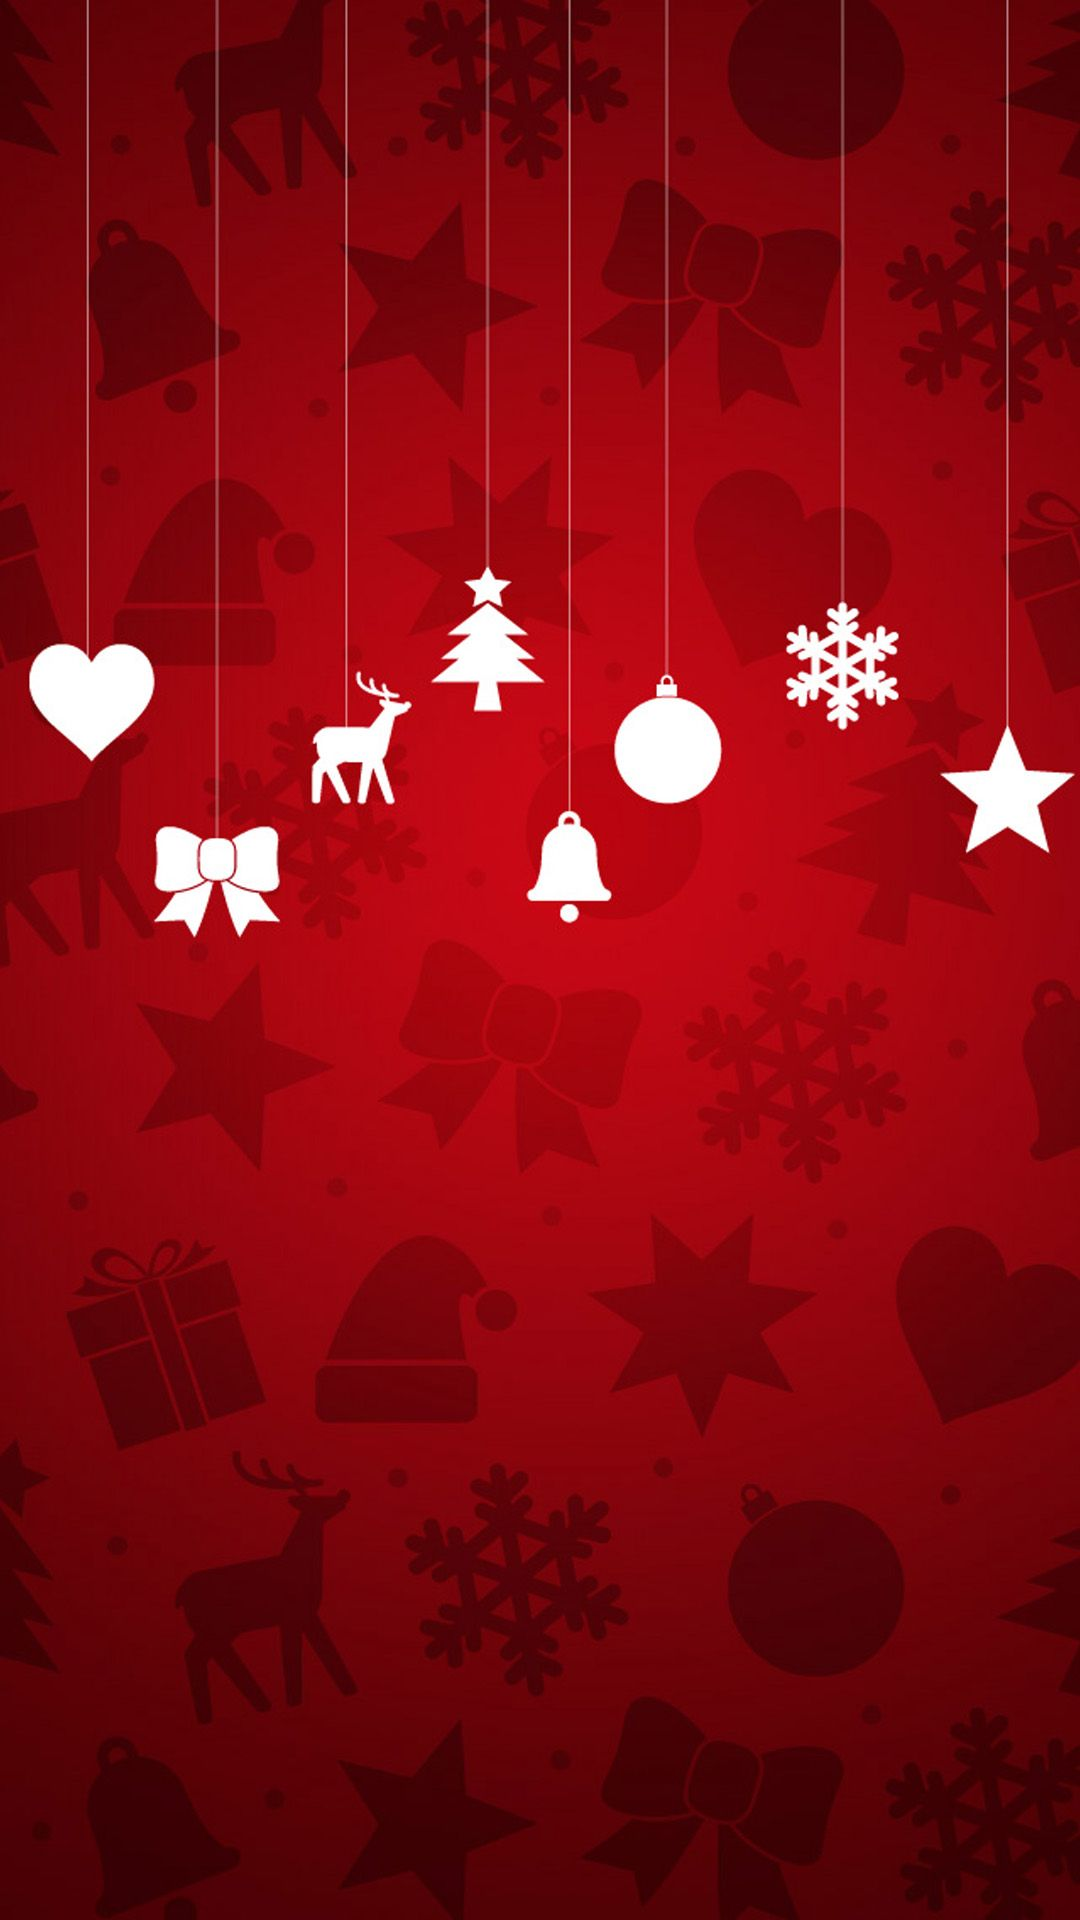 minimal christmas ornaments red background android wallpaper 1080a—1920